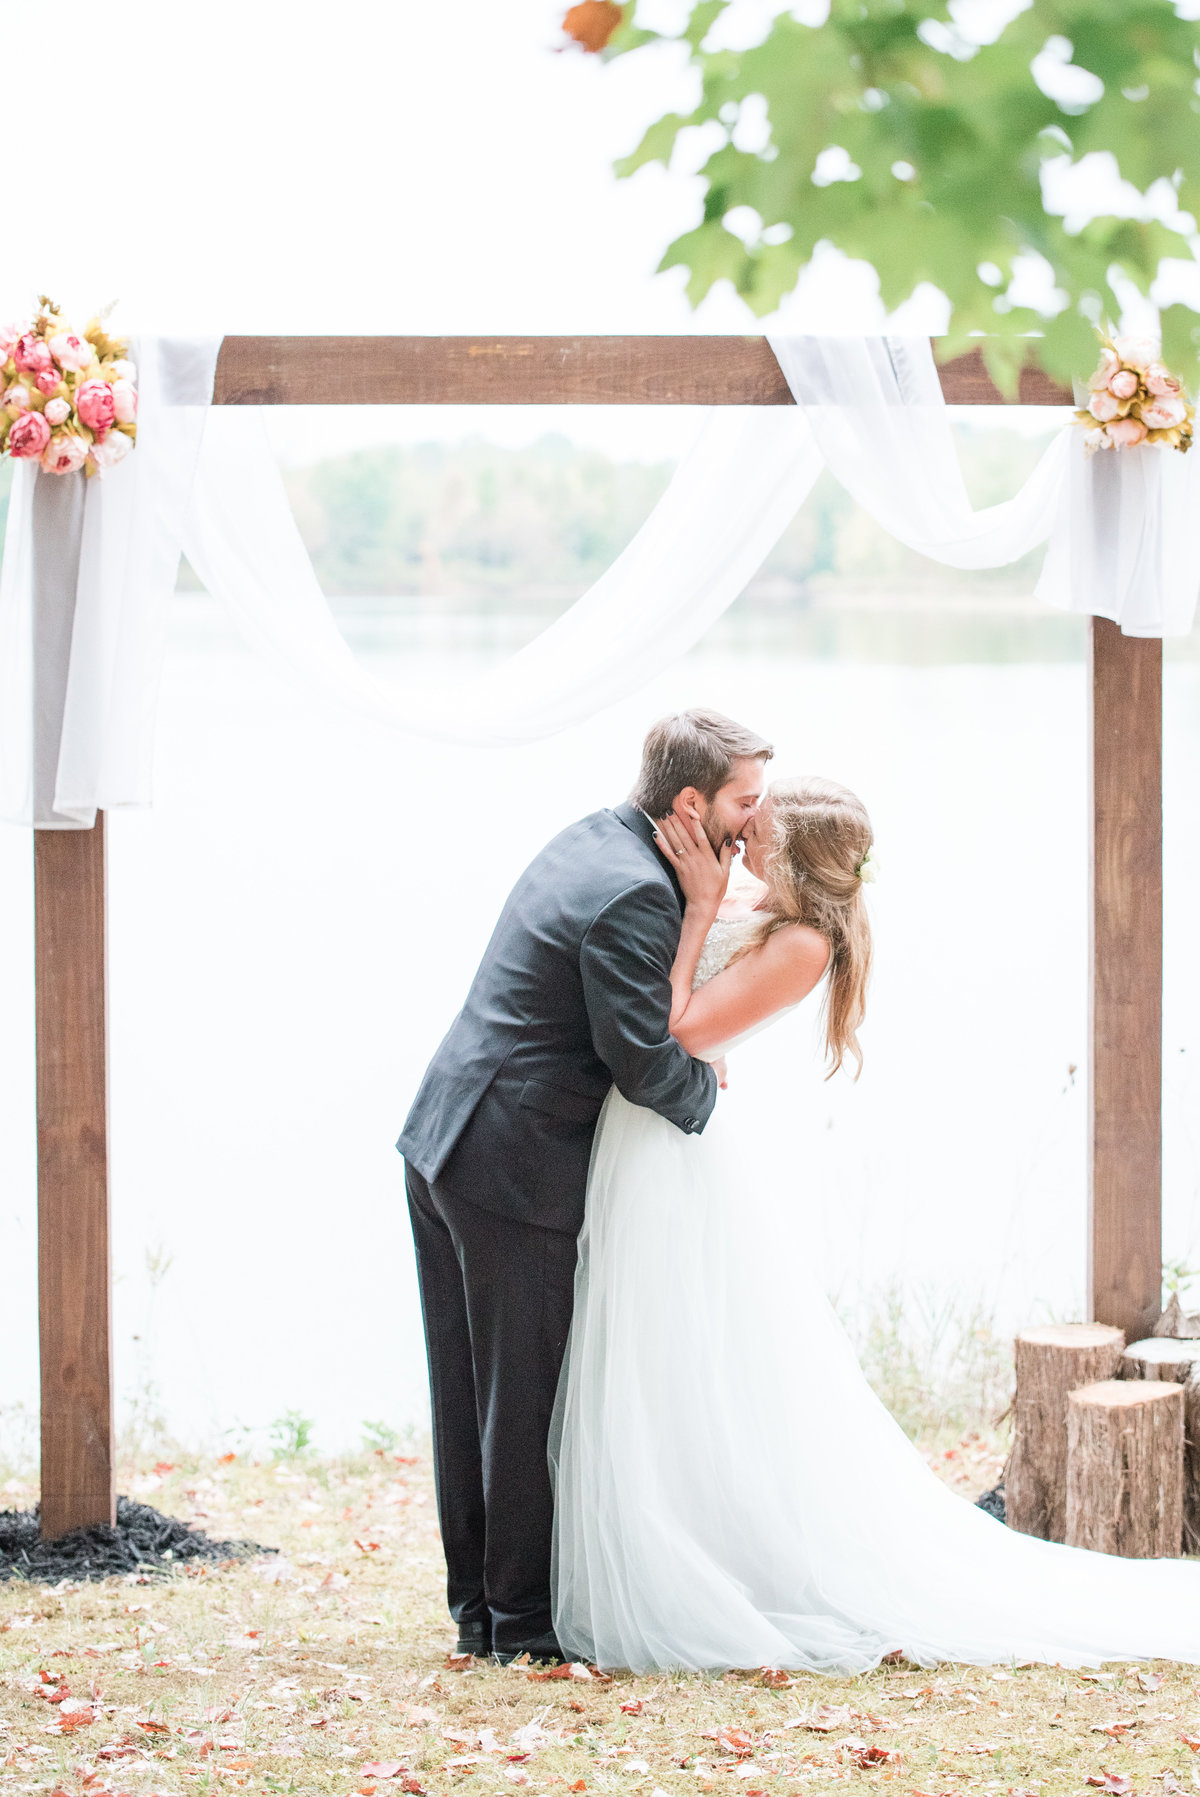 Cait Potter Creative LLC Final Version Canoe Adventure Wedding -12